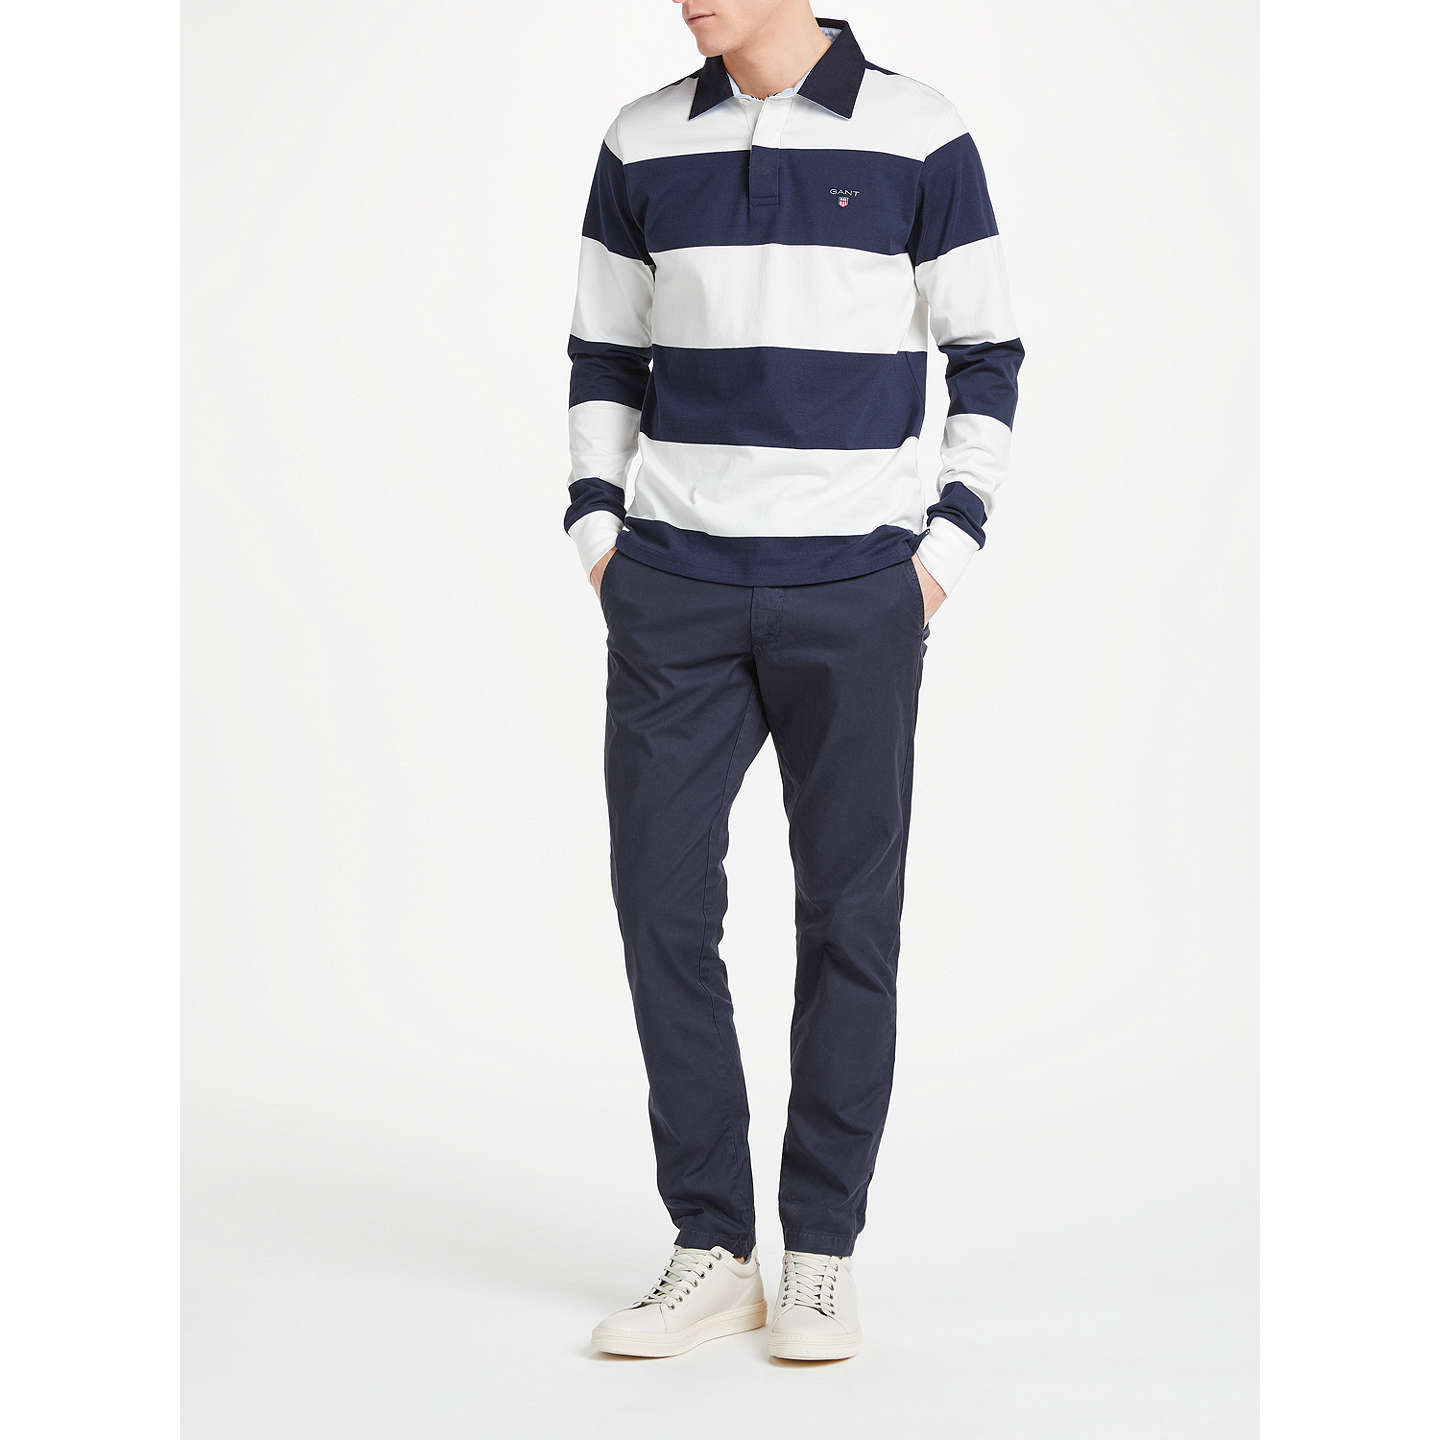 BuyGANT Rugger Bar Stripe Heavy Jersey Rugby Shirt, White/Navy, S Online at johnlewis.com